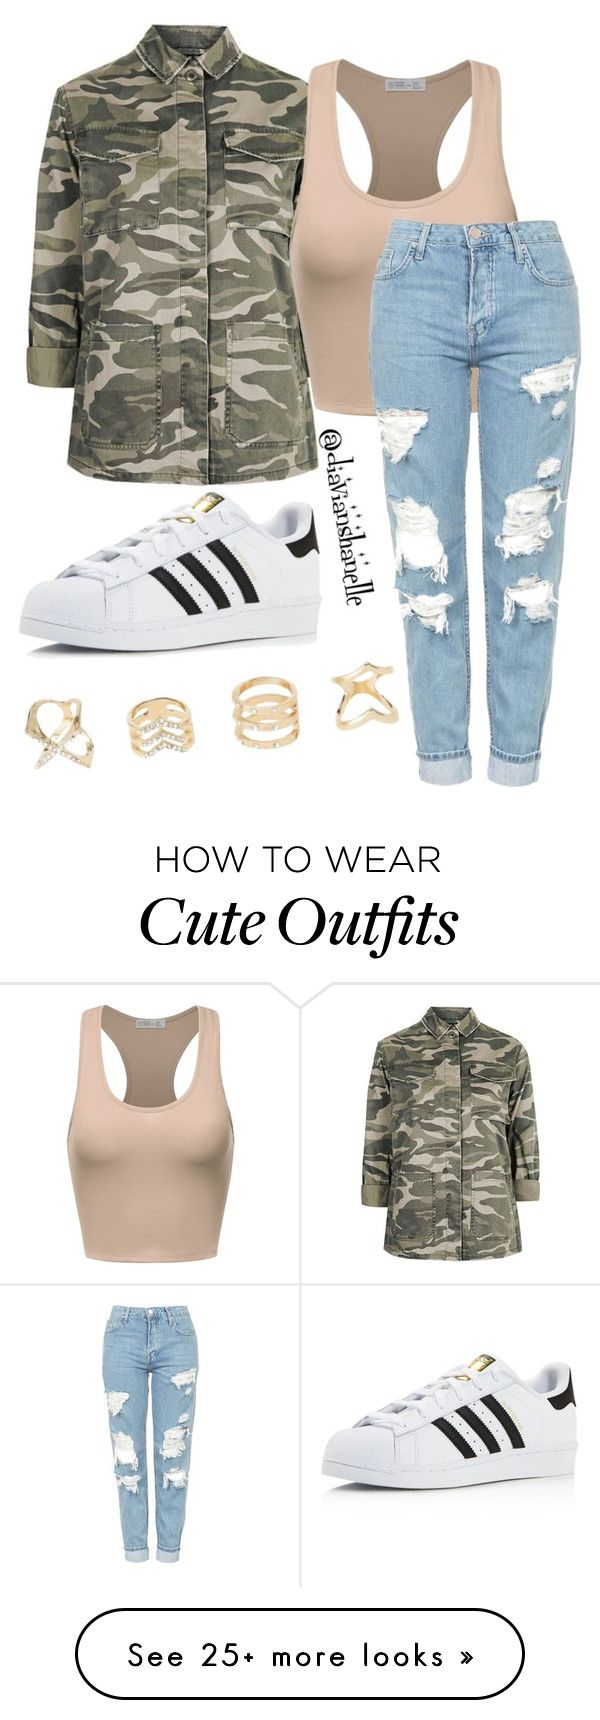 """Cute Fair Day Outfit"" by diavianshanelle on Polyvore featuring Topshop, adidas, Charlotte Russe, Fall, cute, casual and tumblr"